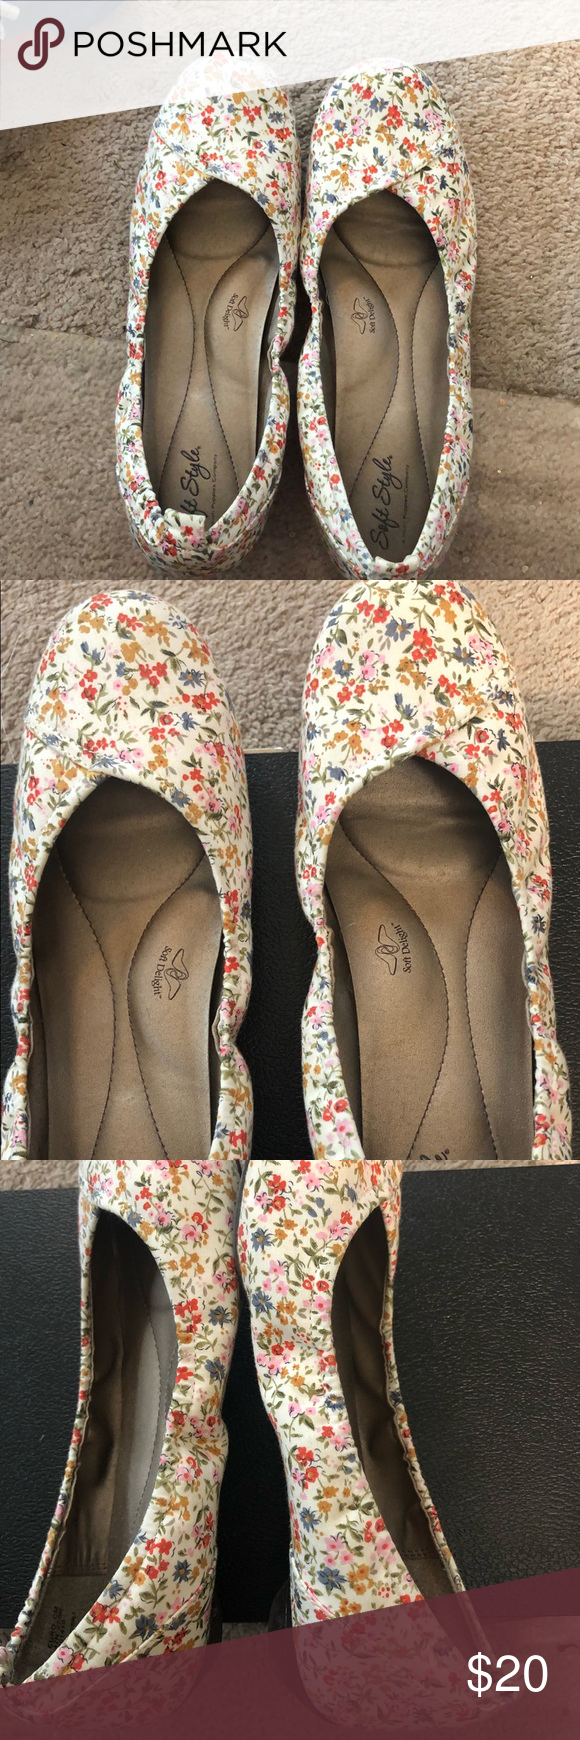 Hush Puppies Soft Style Size 10 Shoe This Multicolored Floral Size 10 Shoe Is In Excellent Condition Very Comfort Size 10 Shoes Hush Puppies Shoes Hush Puppies